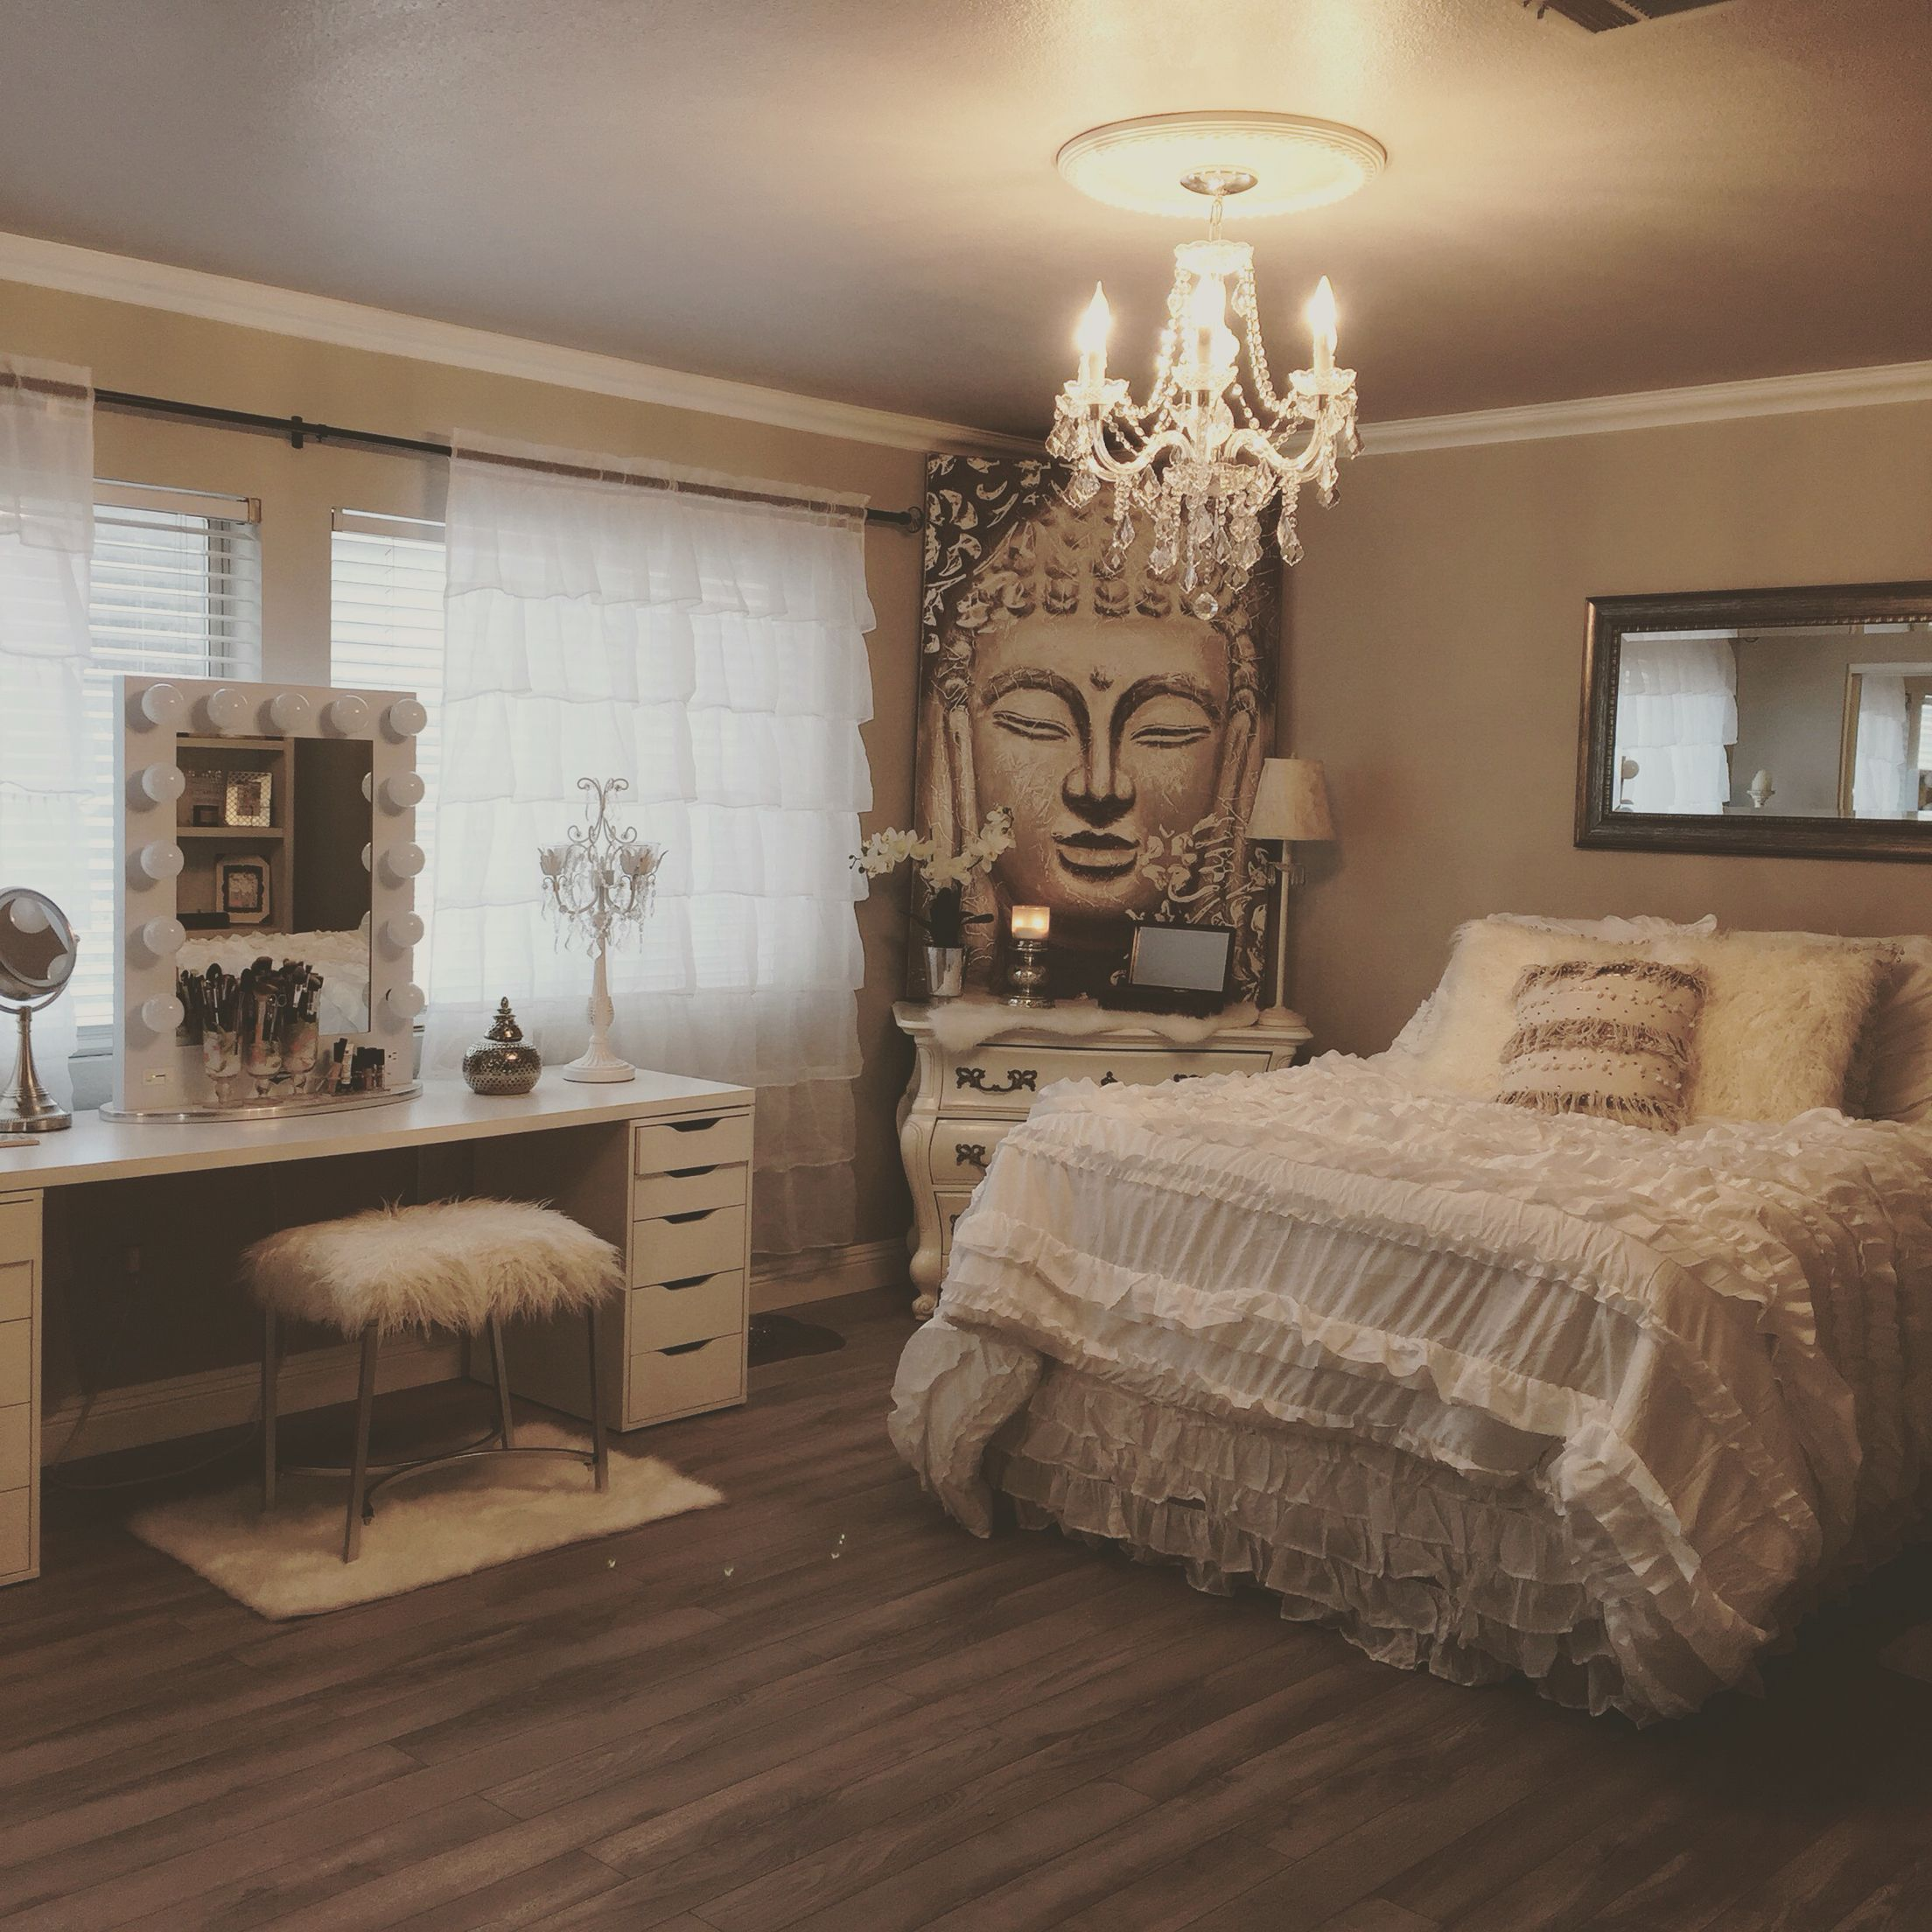 Shabby chic meets zen glam my new bedroom pinterest for Room decor ideas vintage